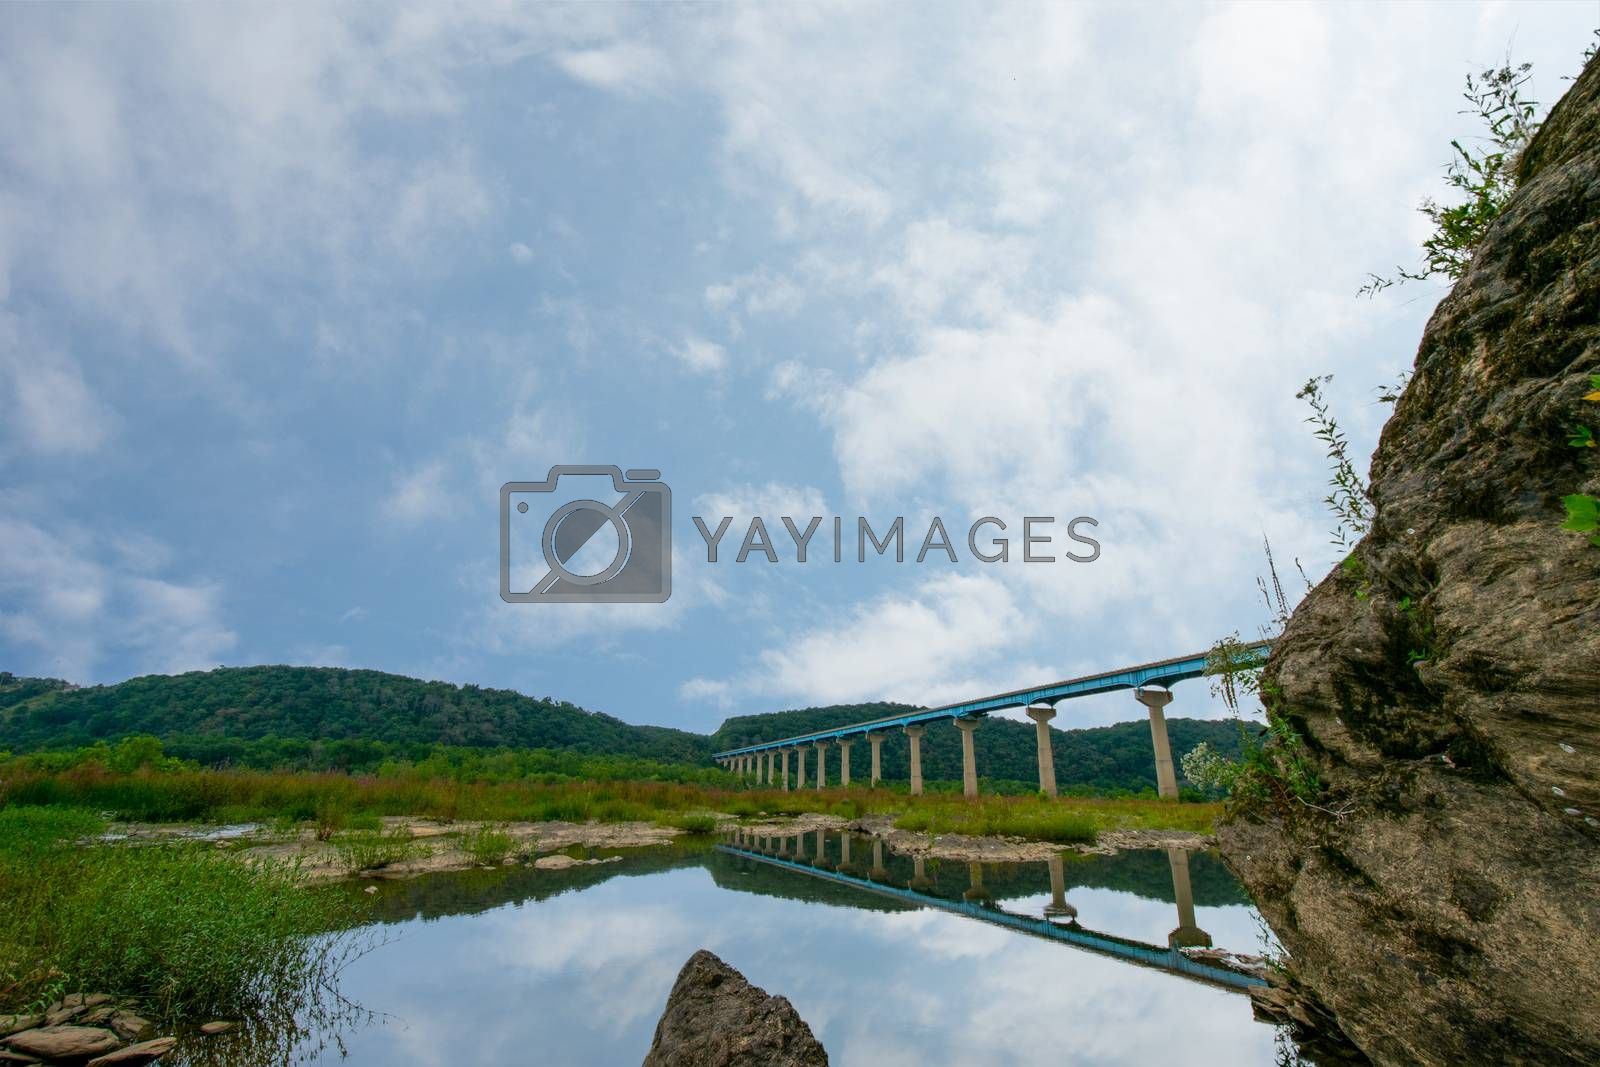 The Norman Wood Bridge Over the Susquehanna River in Holtwood Pennsylvania Casting a Reflection Into the Water